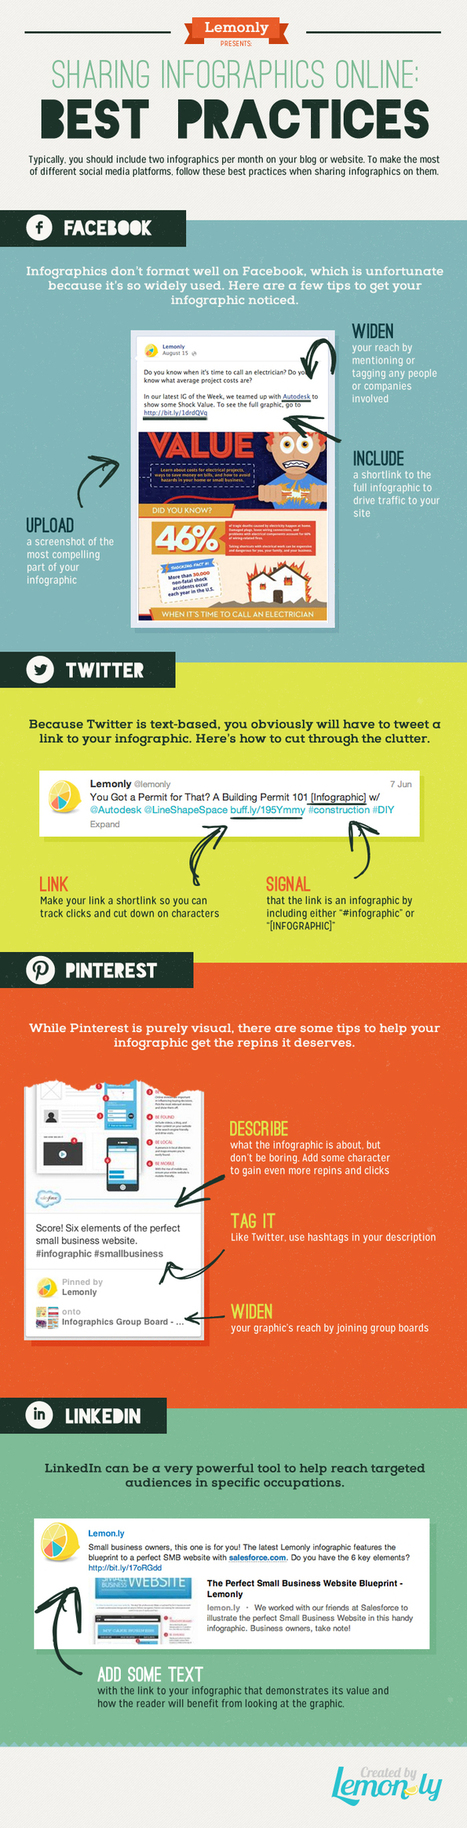 How to Share Infographics on Social Media - Best Practices [Infographic] | Self Promotion | Scoop.it